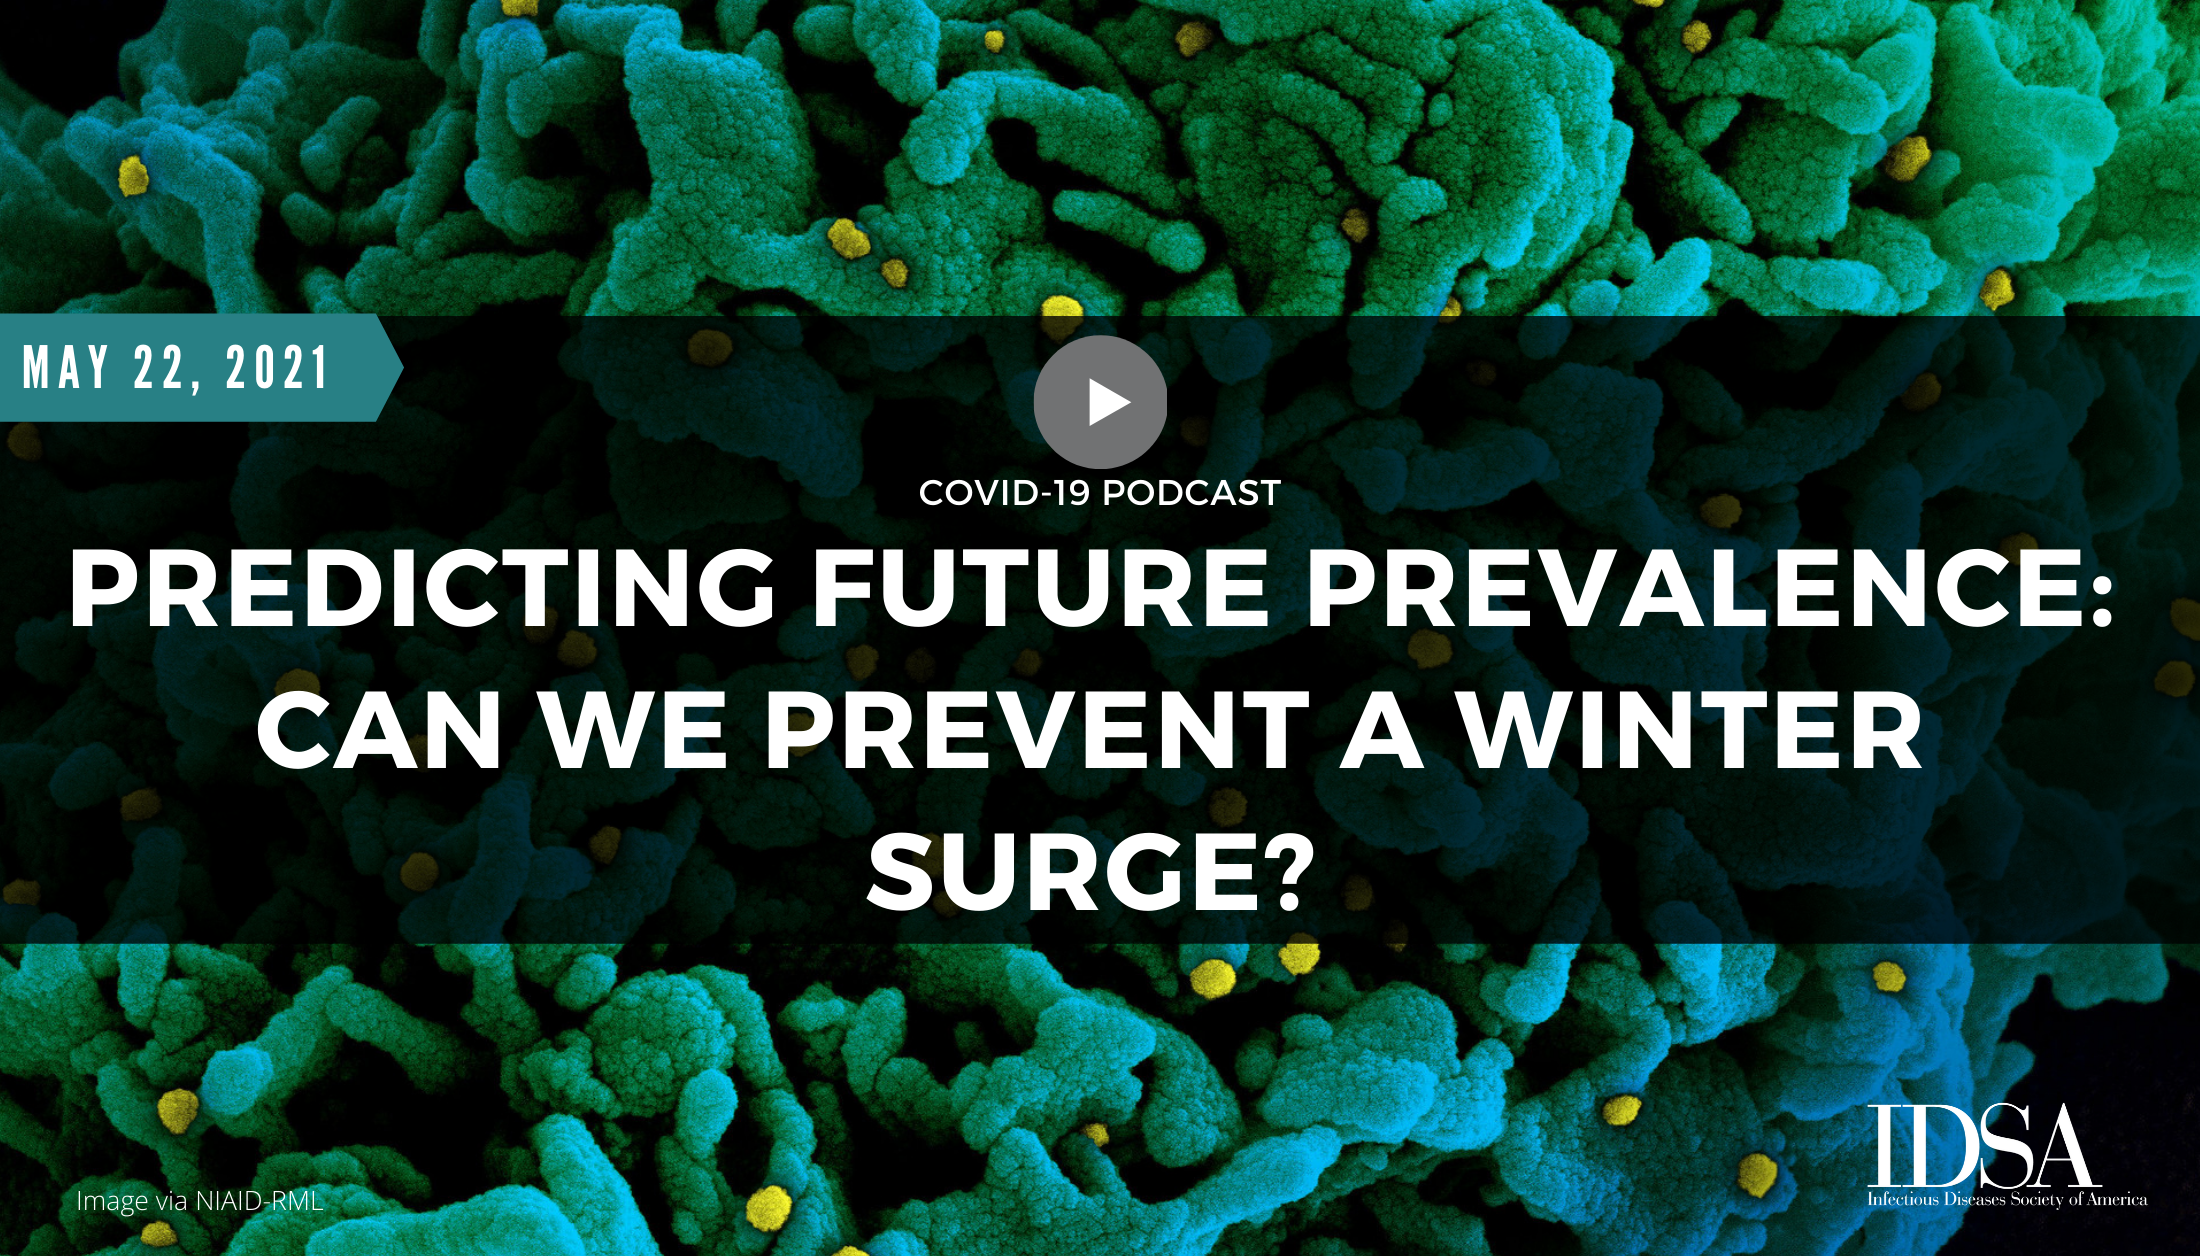 Predicting Future Prevalence: Can We Prevent a Winter Surge? (May 22, 2021)